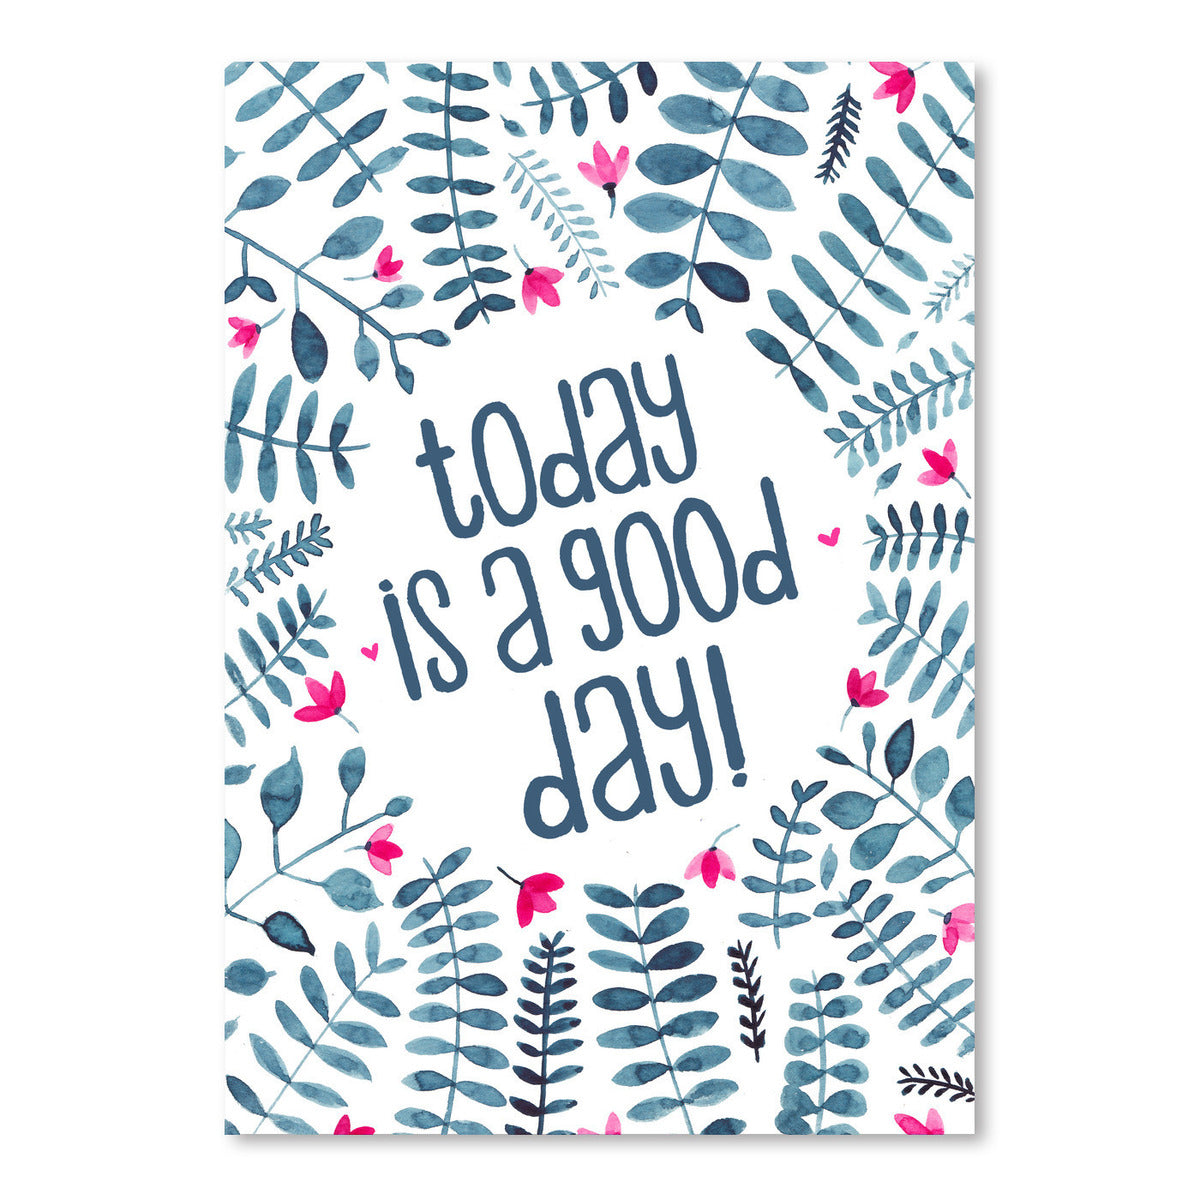 Today Is A Good Day Floral by Elena O'Neill Art Print - Art Print - Americanflat